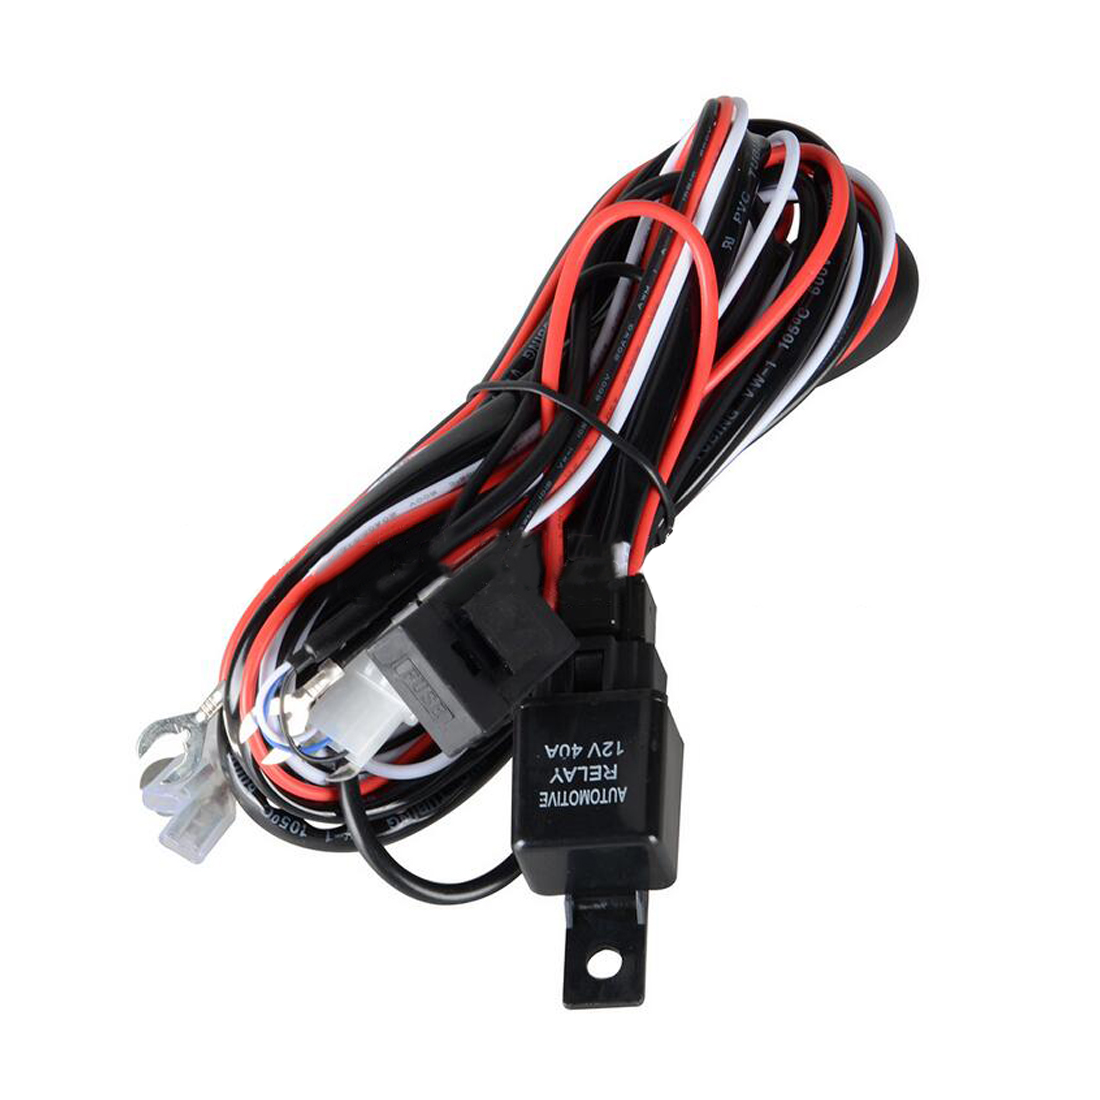 Dewtreetali Wiring Harness LED HID Work Driving Light Wiring Harness Kit Fog Spot Work Light 2.5m Length 12V 40A Switch Relay